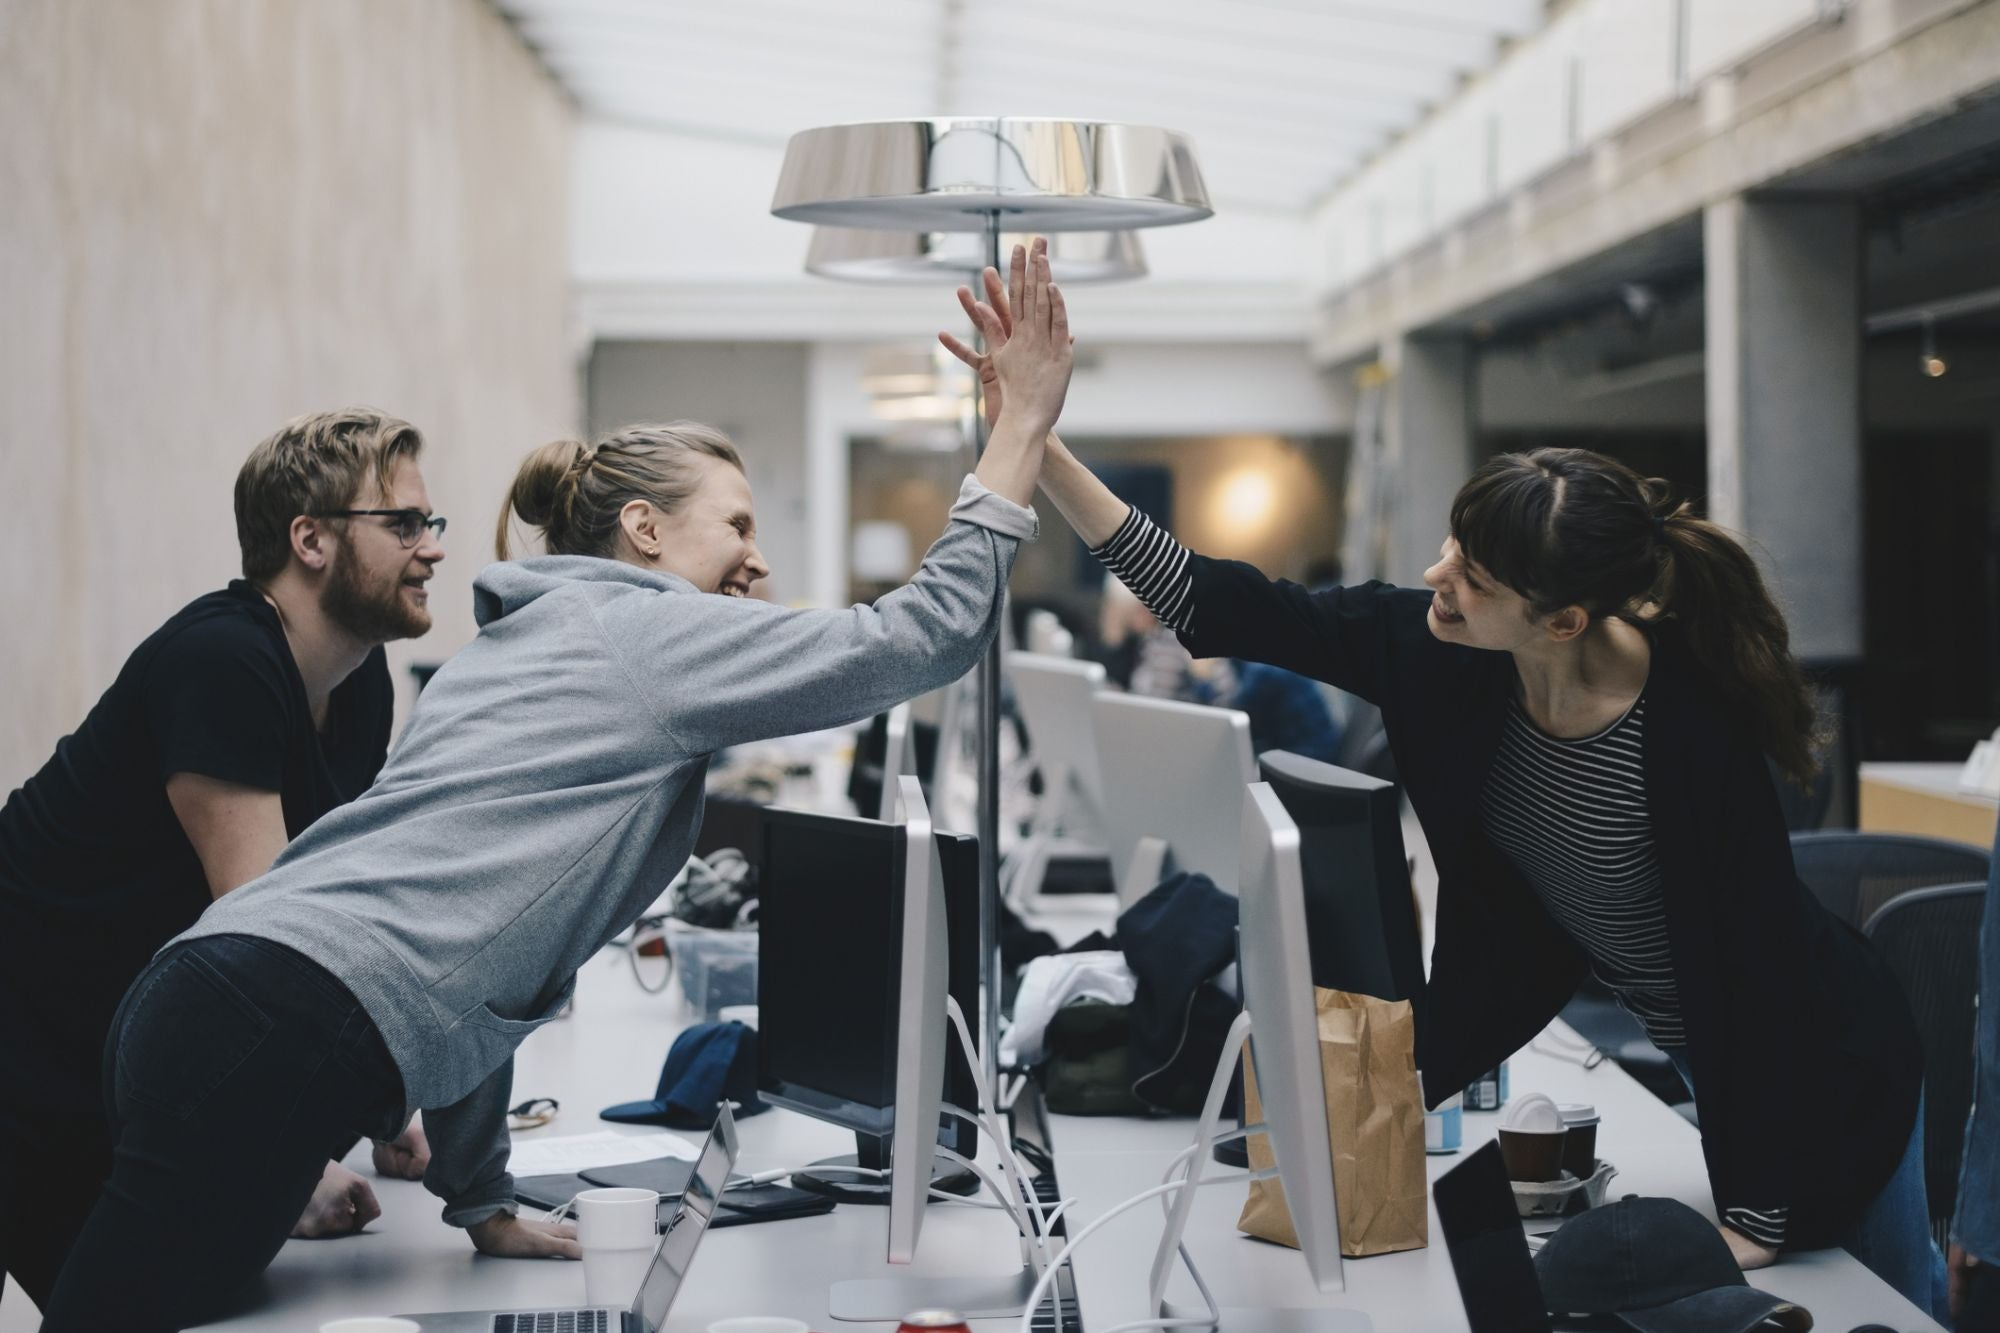 3 Ways to Build and Grow a Successful Business in 2020